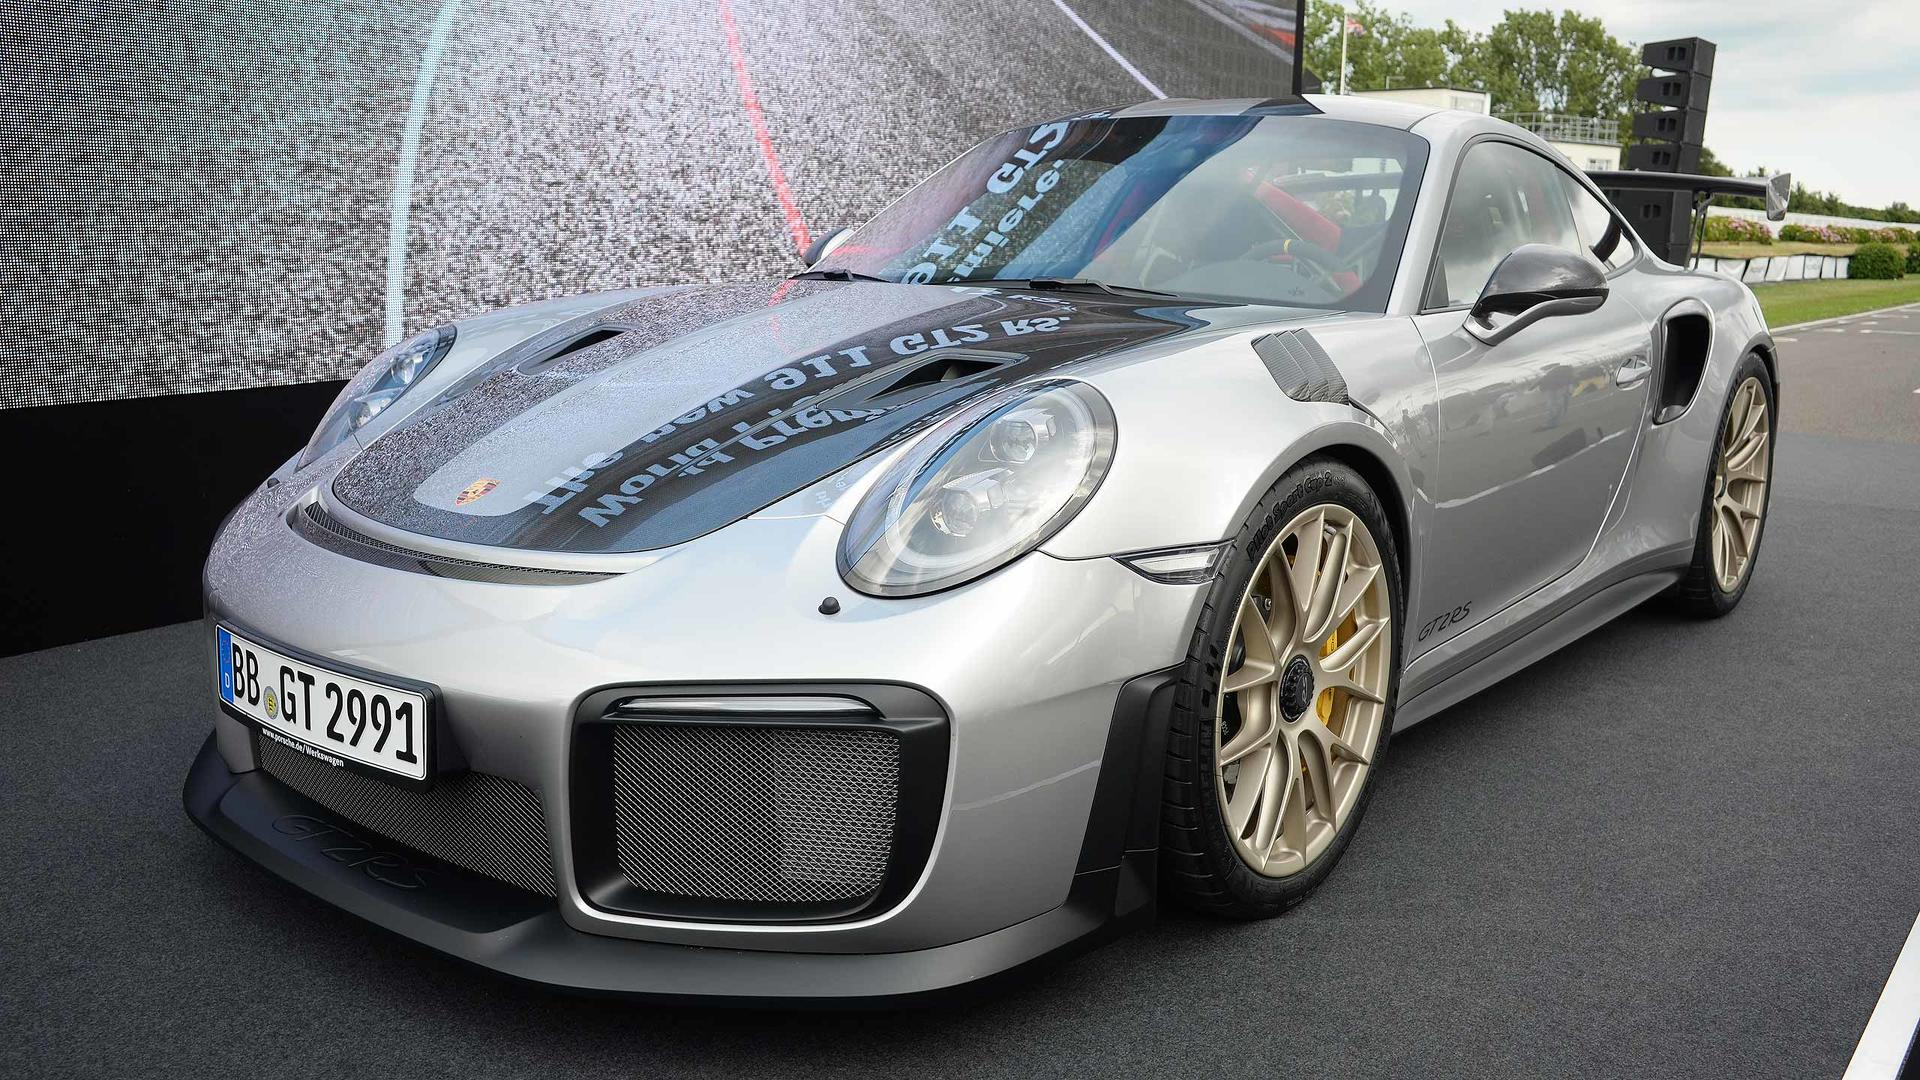 2018-porsche-911-gt2-rs-at-2017-goodwood-festival-of-speed Amazing Porsche 911 Gt2 Rs Engine Cars Trend